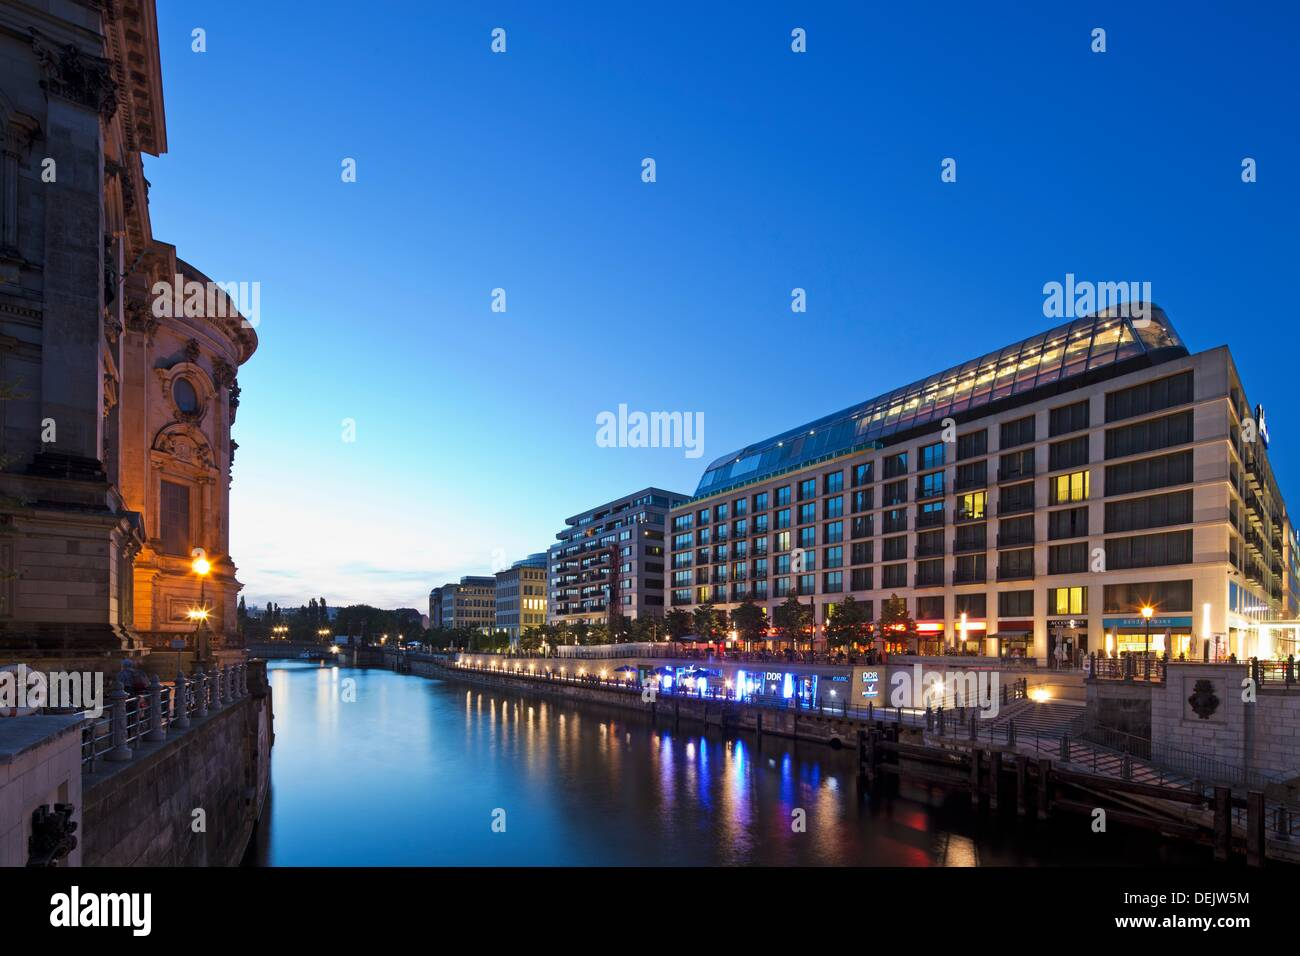 Twilight view of the Radisson Blu Hotel with the back end of the BerlinerDom on the left  Mitte, Berlin, Germany - Stock Image